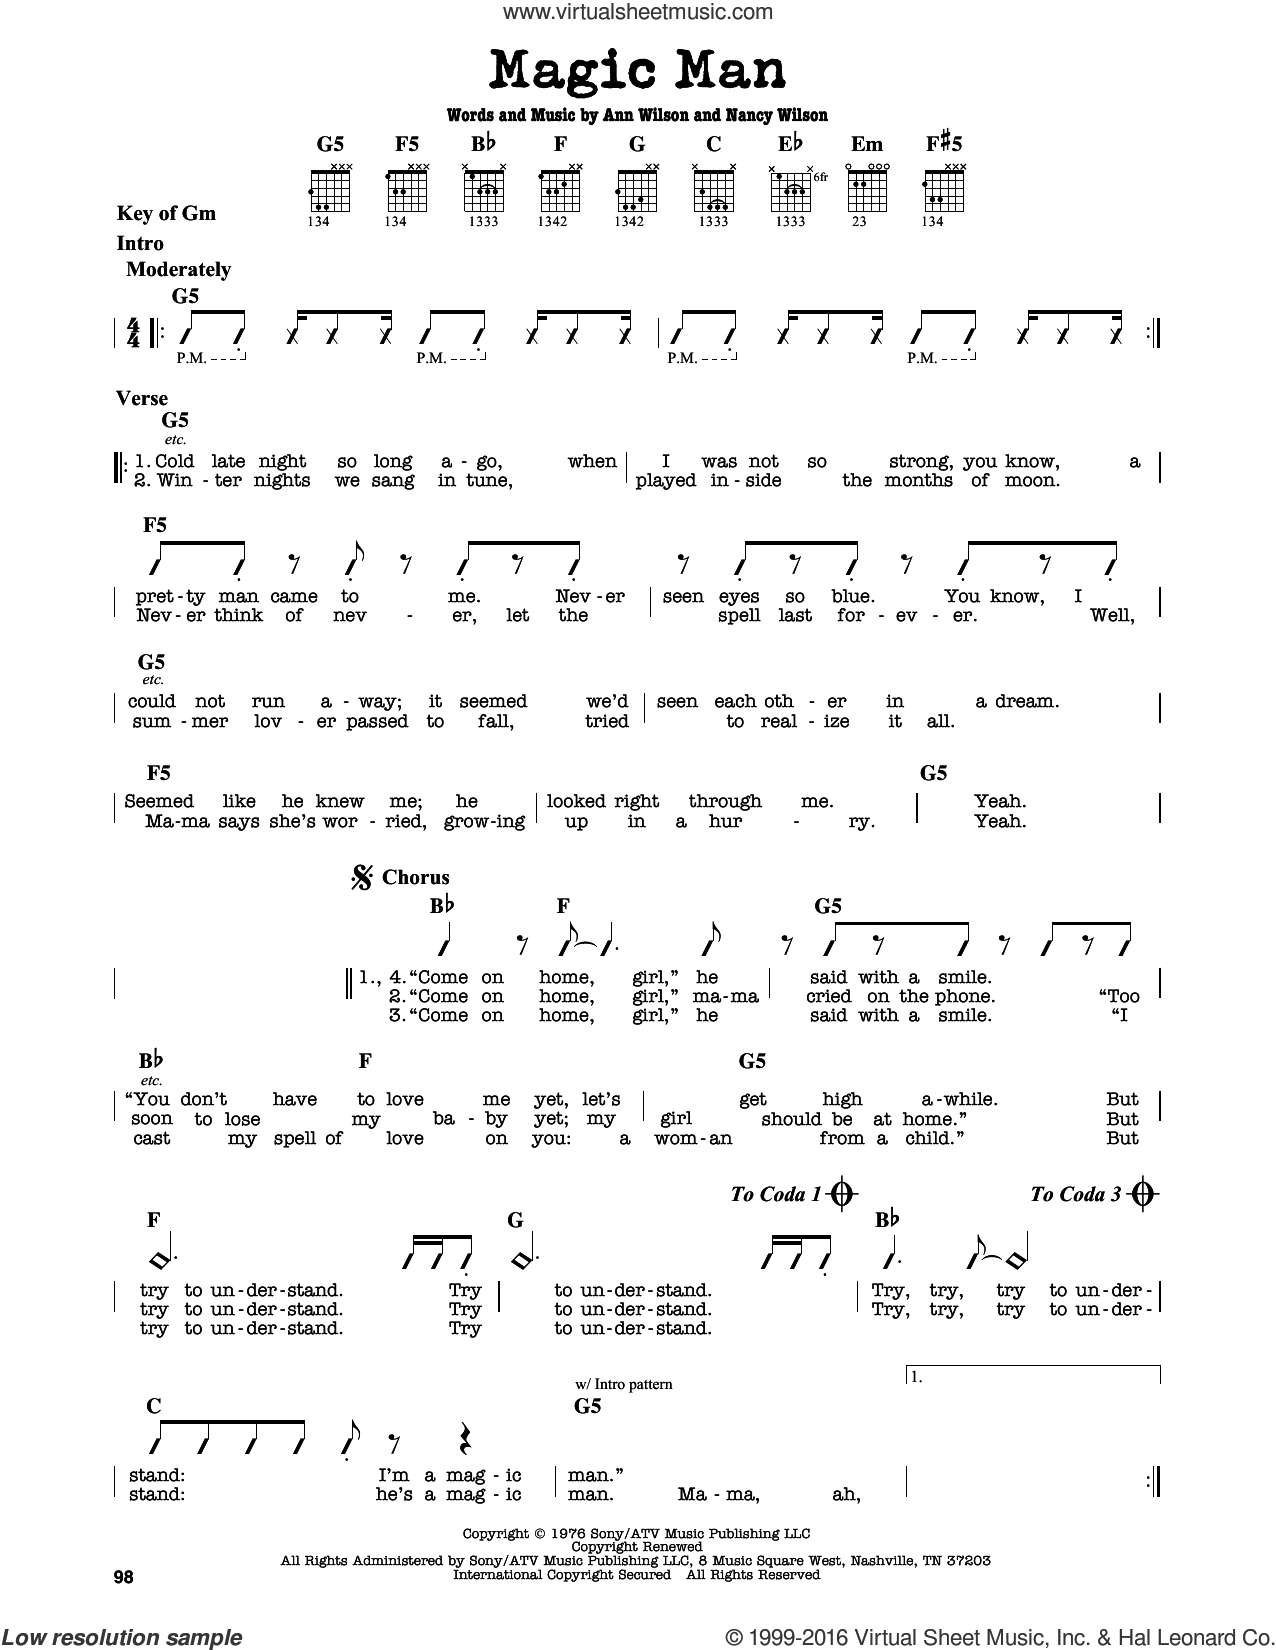 Magic Man sheet music for guitar solo (lead sheet) by Nancy Wilson, Heart and Ann Wilson. Score Image Preview.